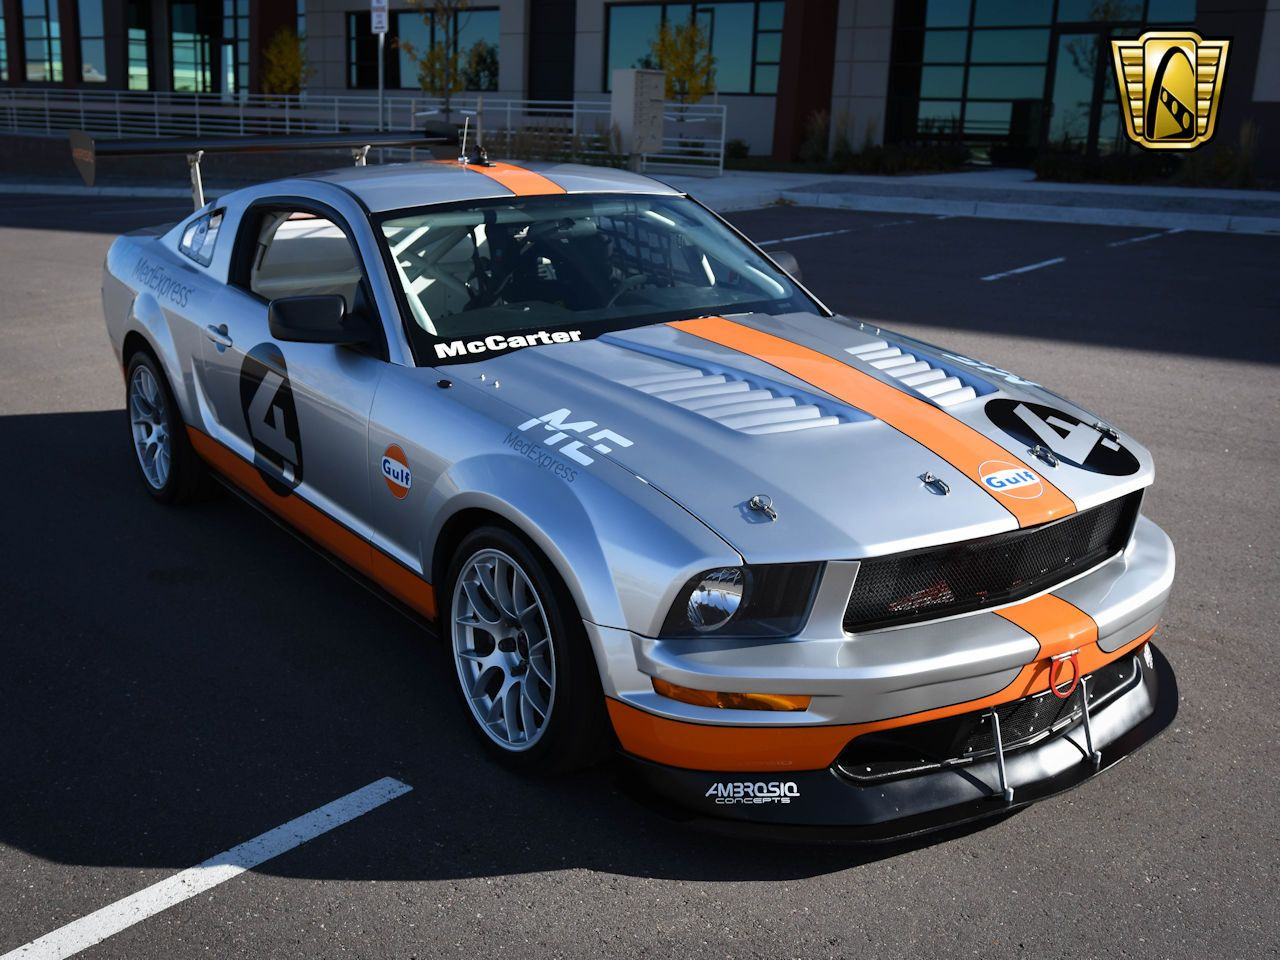 2008 Ford Mustang FR500S Race Car Gateway Classic Cars